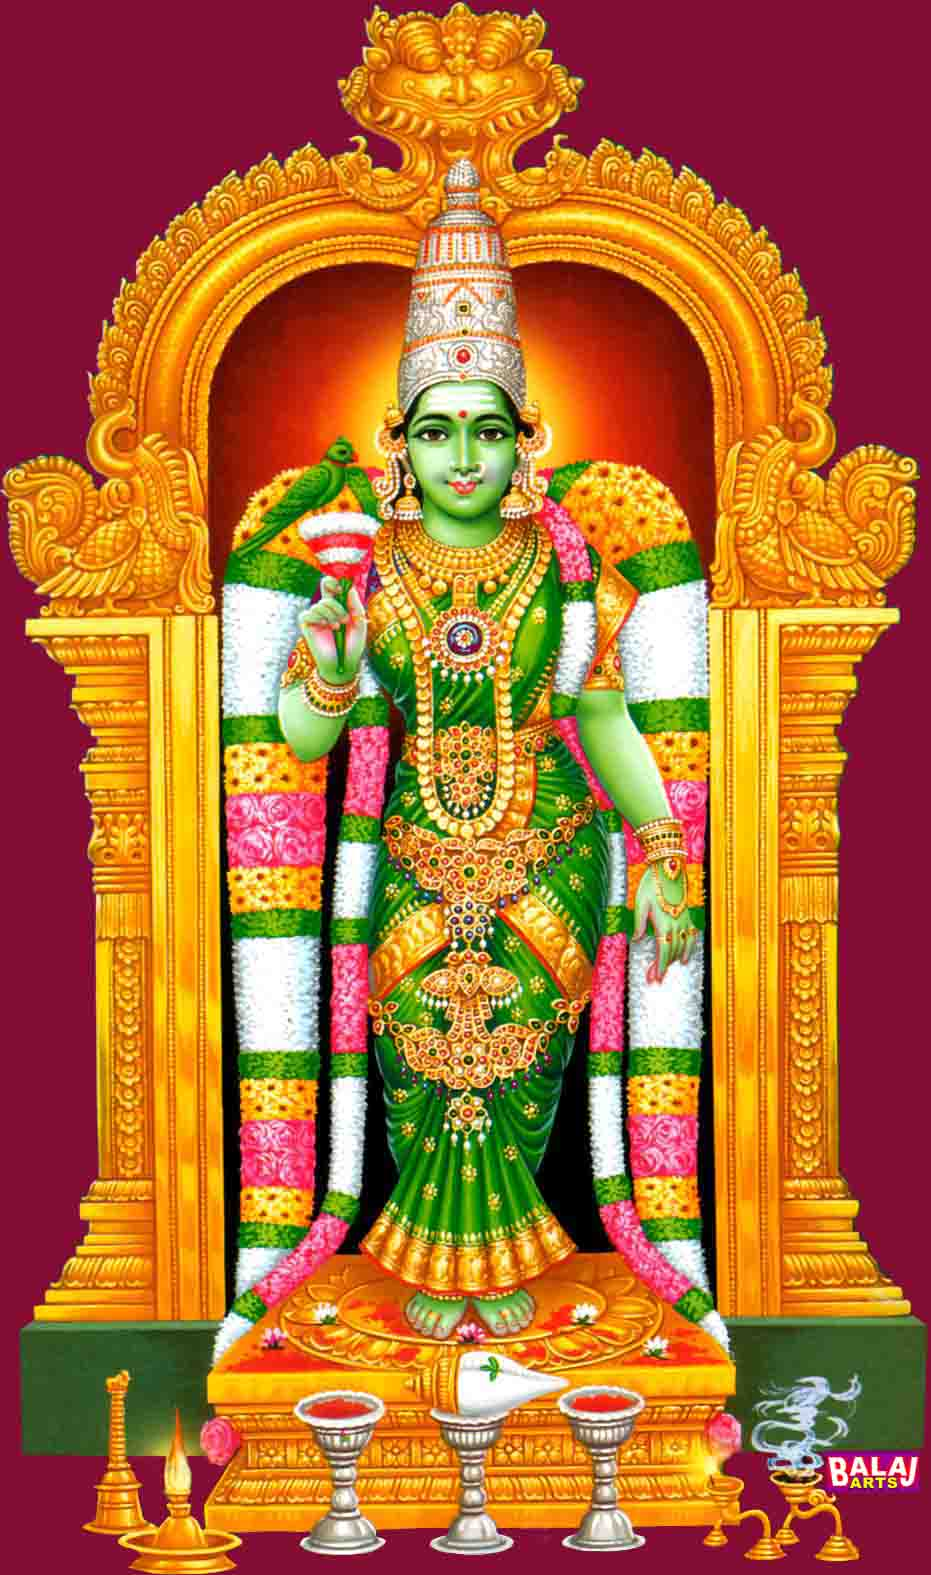 Image Galleries For Lionaid Campaigns: Ruling Deity Of Madurai The Great Meenakshi Amman